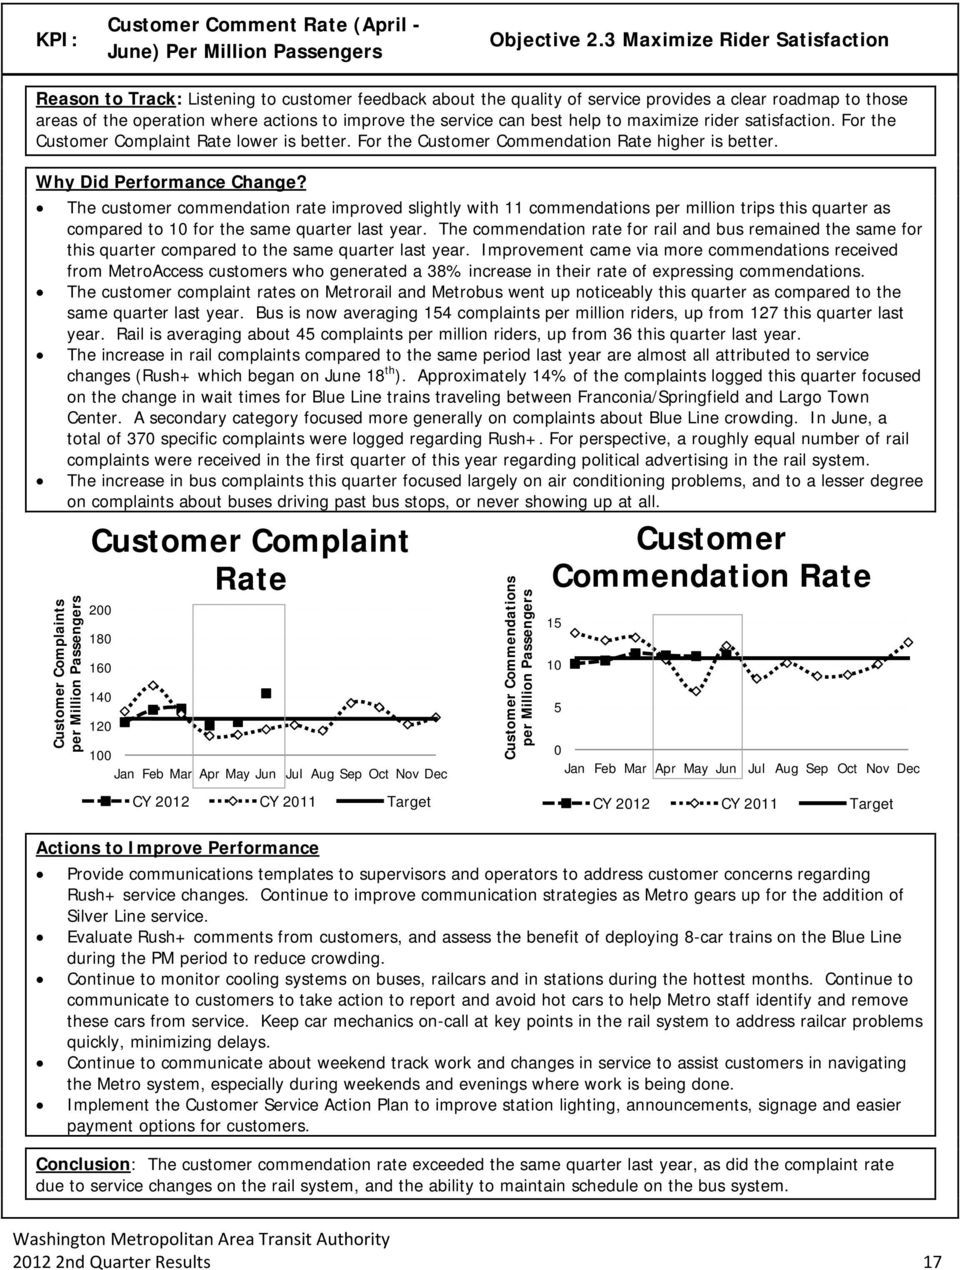 service can best help to maximize rider satisfaction. For the Customer Complaint Rate lower is better. For the Customer Commendation Rate higher is better. Why Did Performance Change?